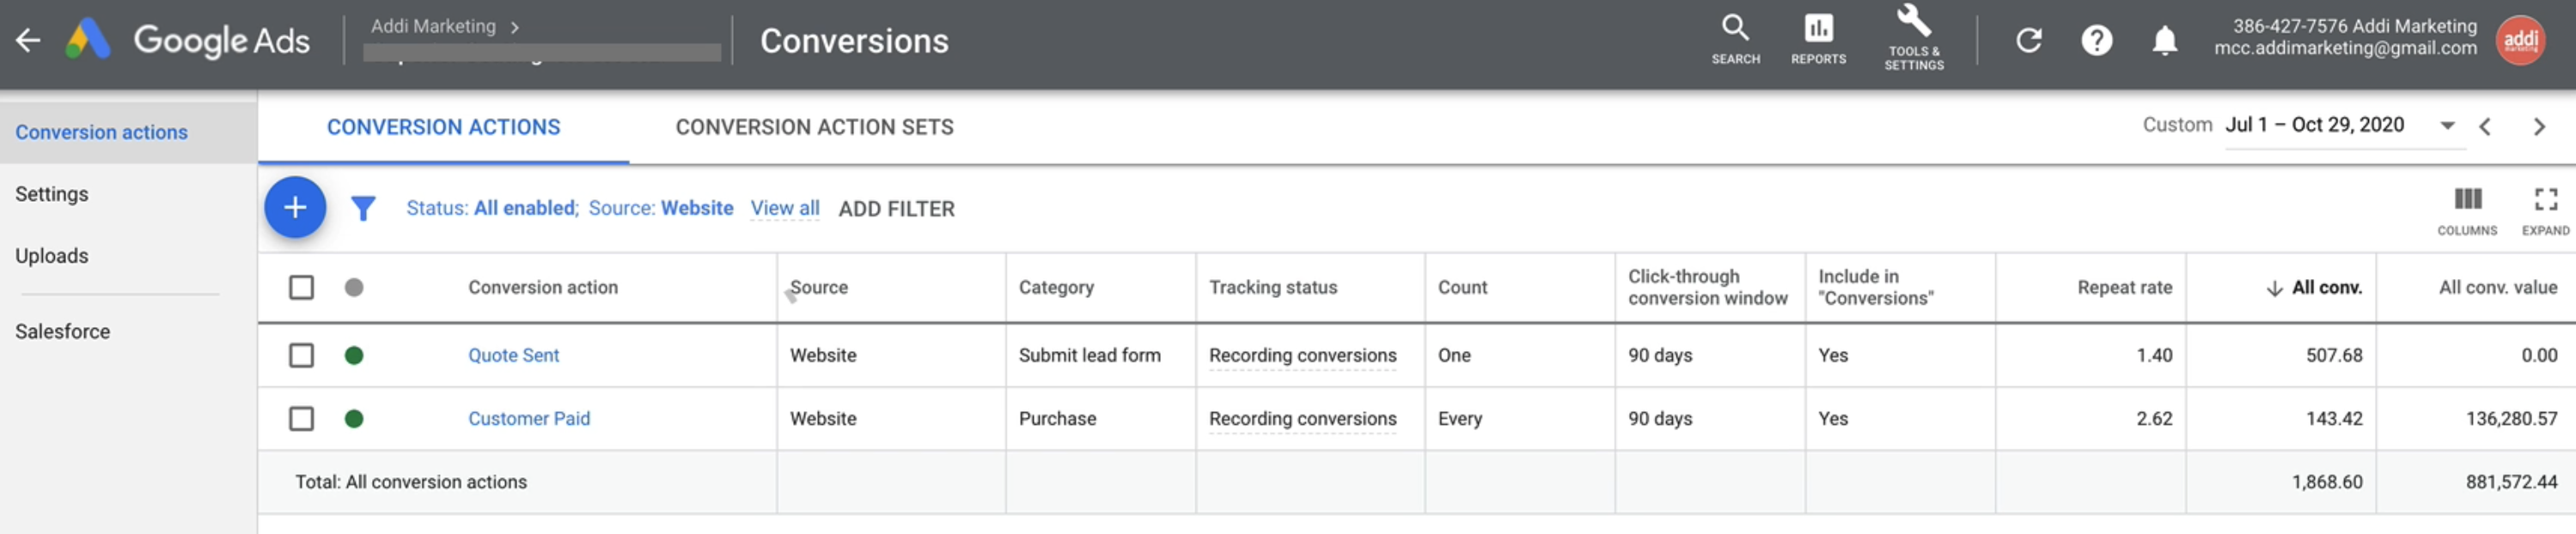 Conversion view in Google Ads